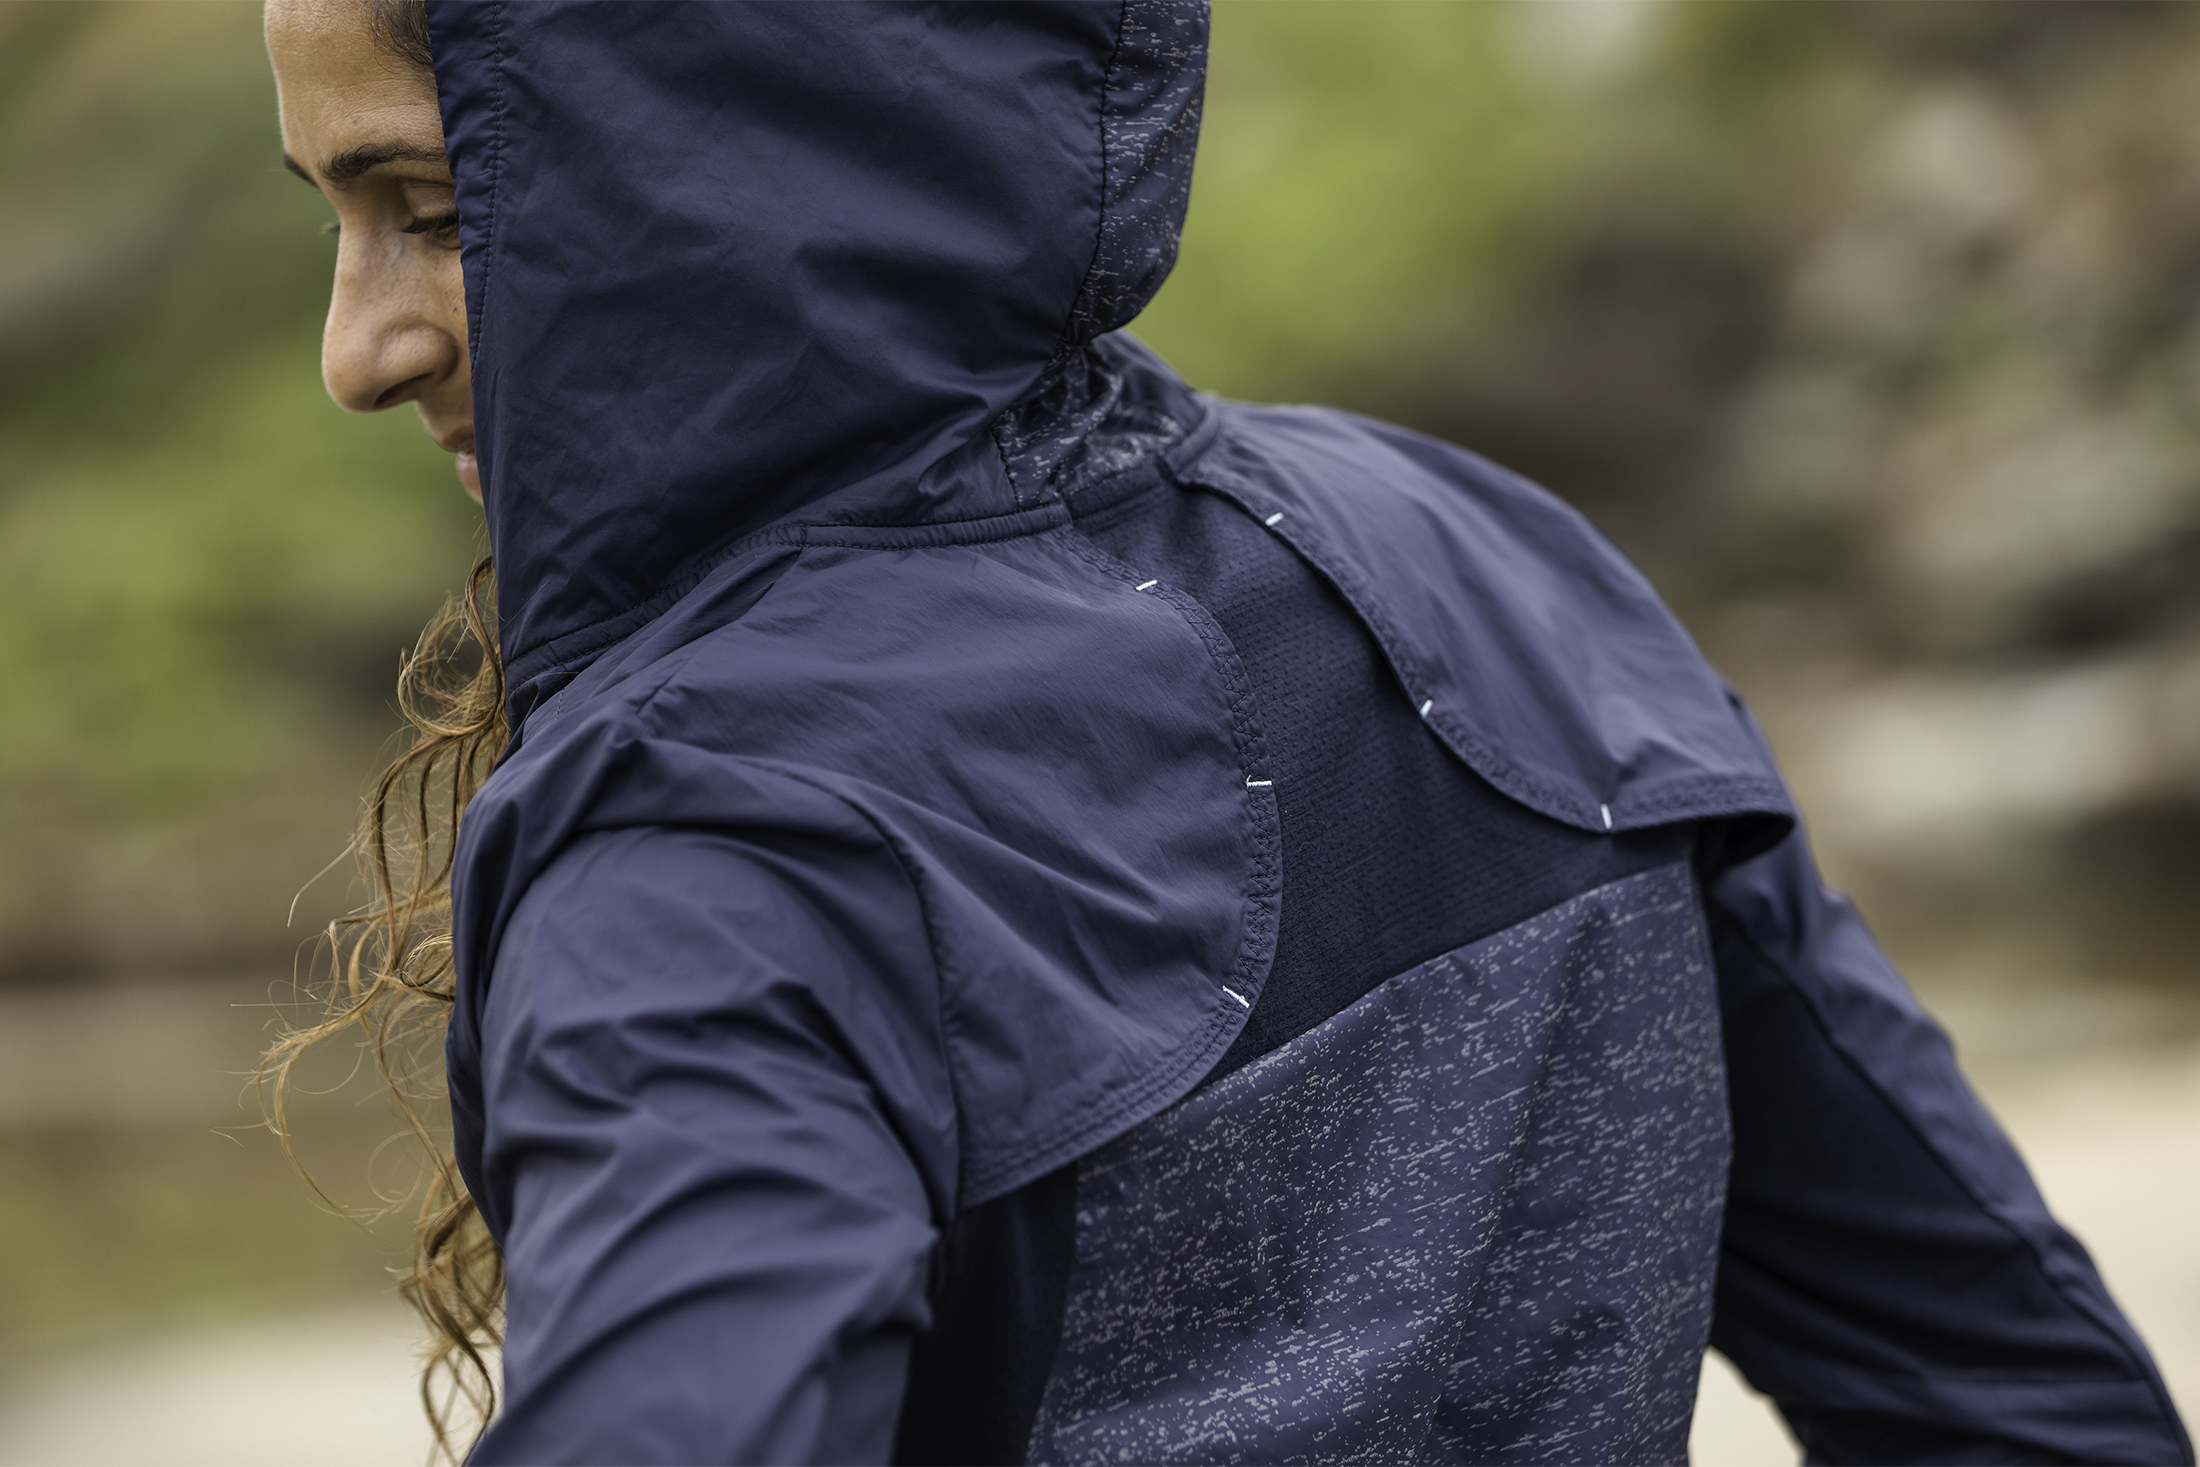 Smartwool sweat mapping jacket